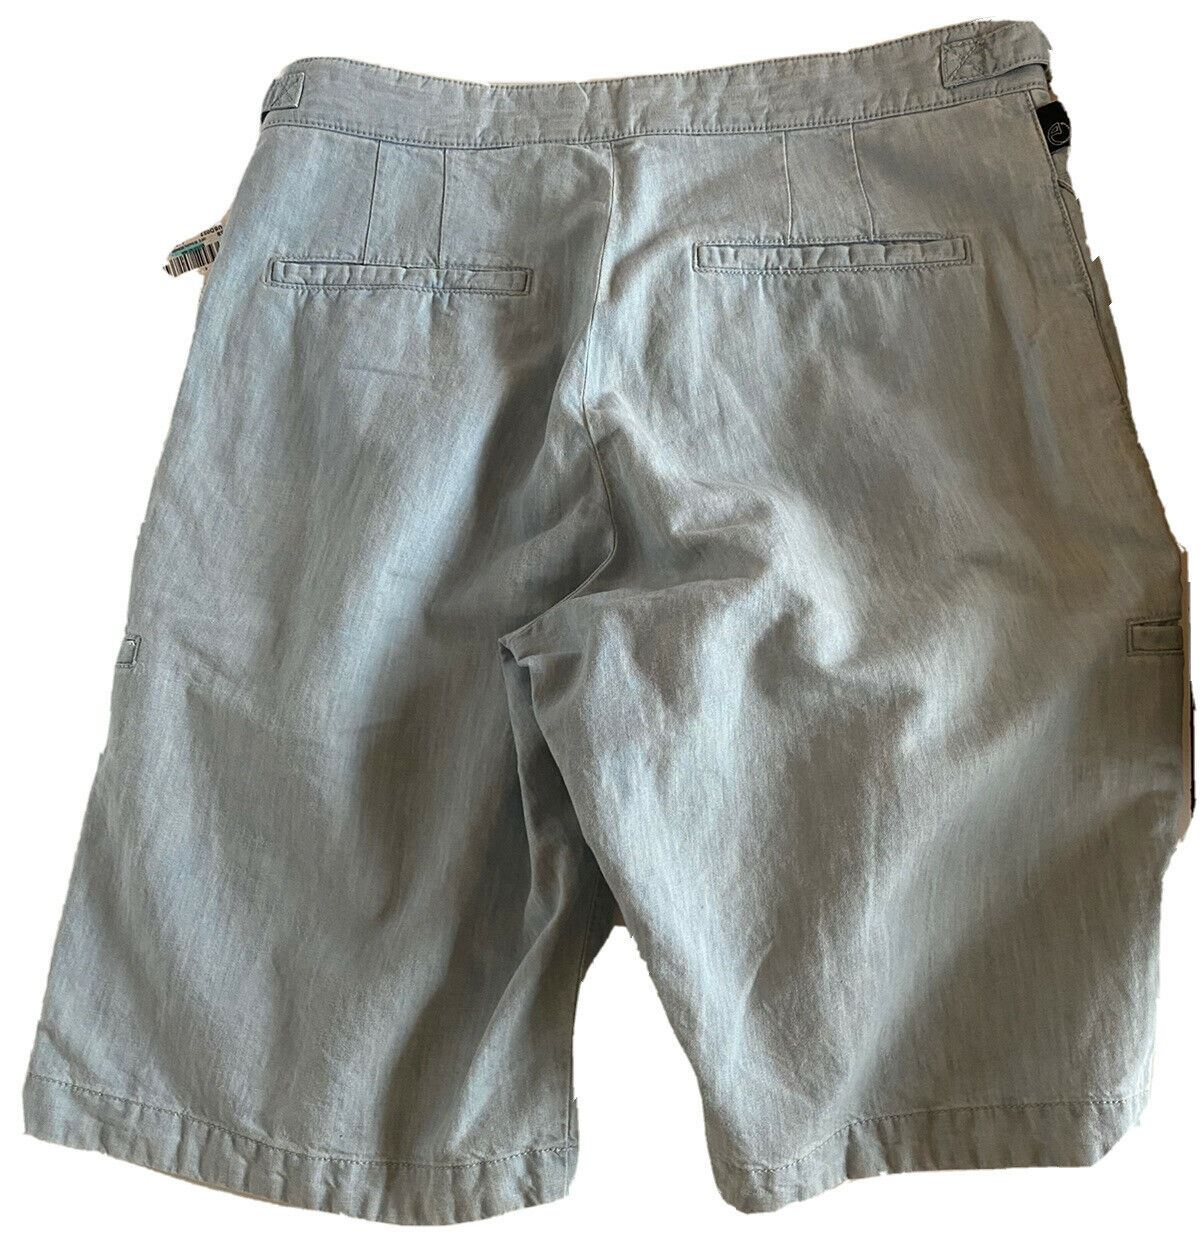 NWT $495 Armani Collezioni Men's Light Blue Shorts Size 30 US (46 Eu) TCP82S